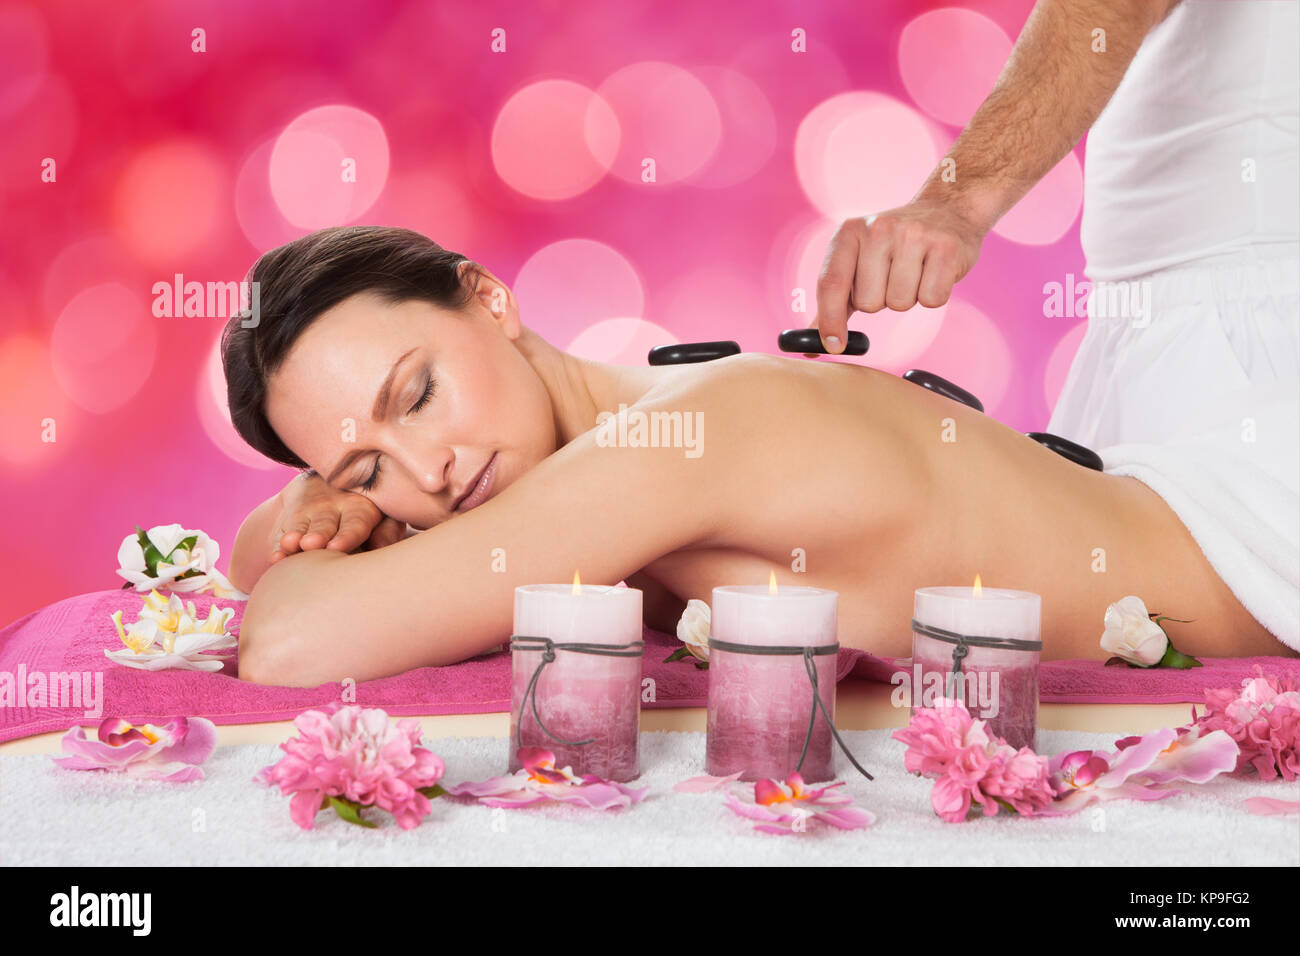 Relaxed Woman Receiving Hot Stone Therapy - Stock Image